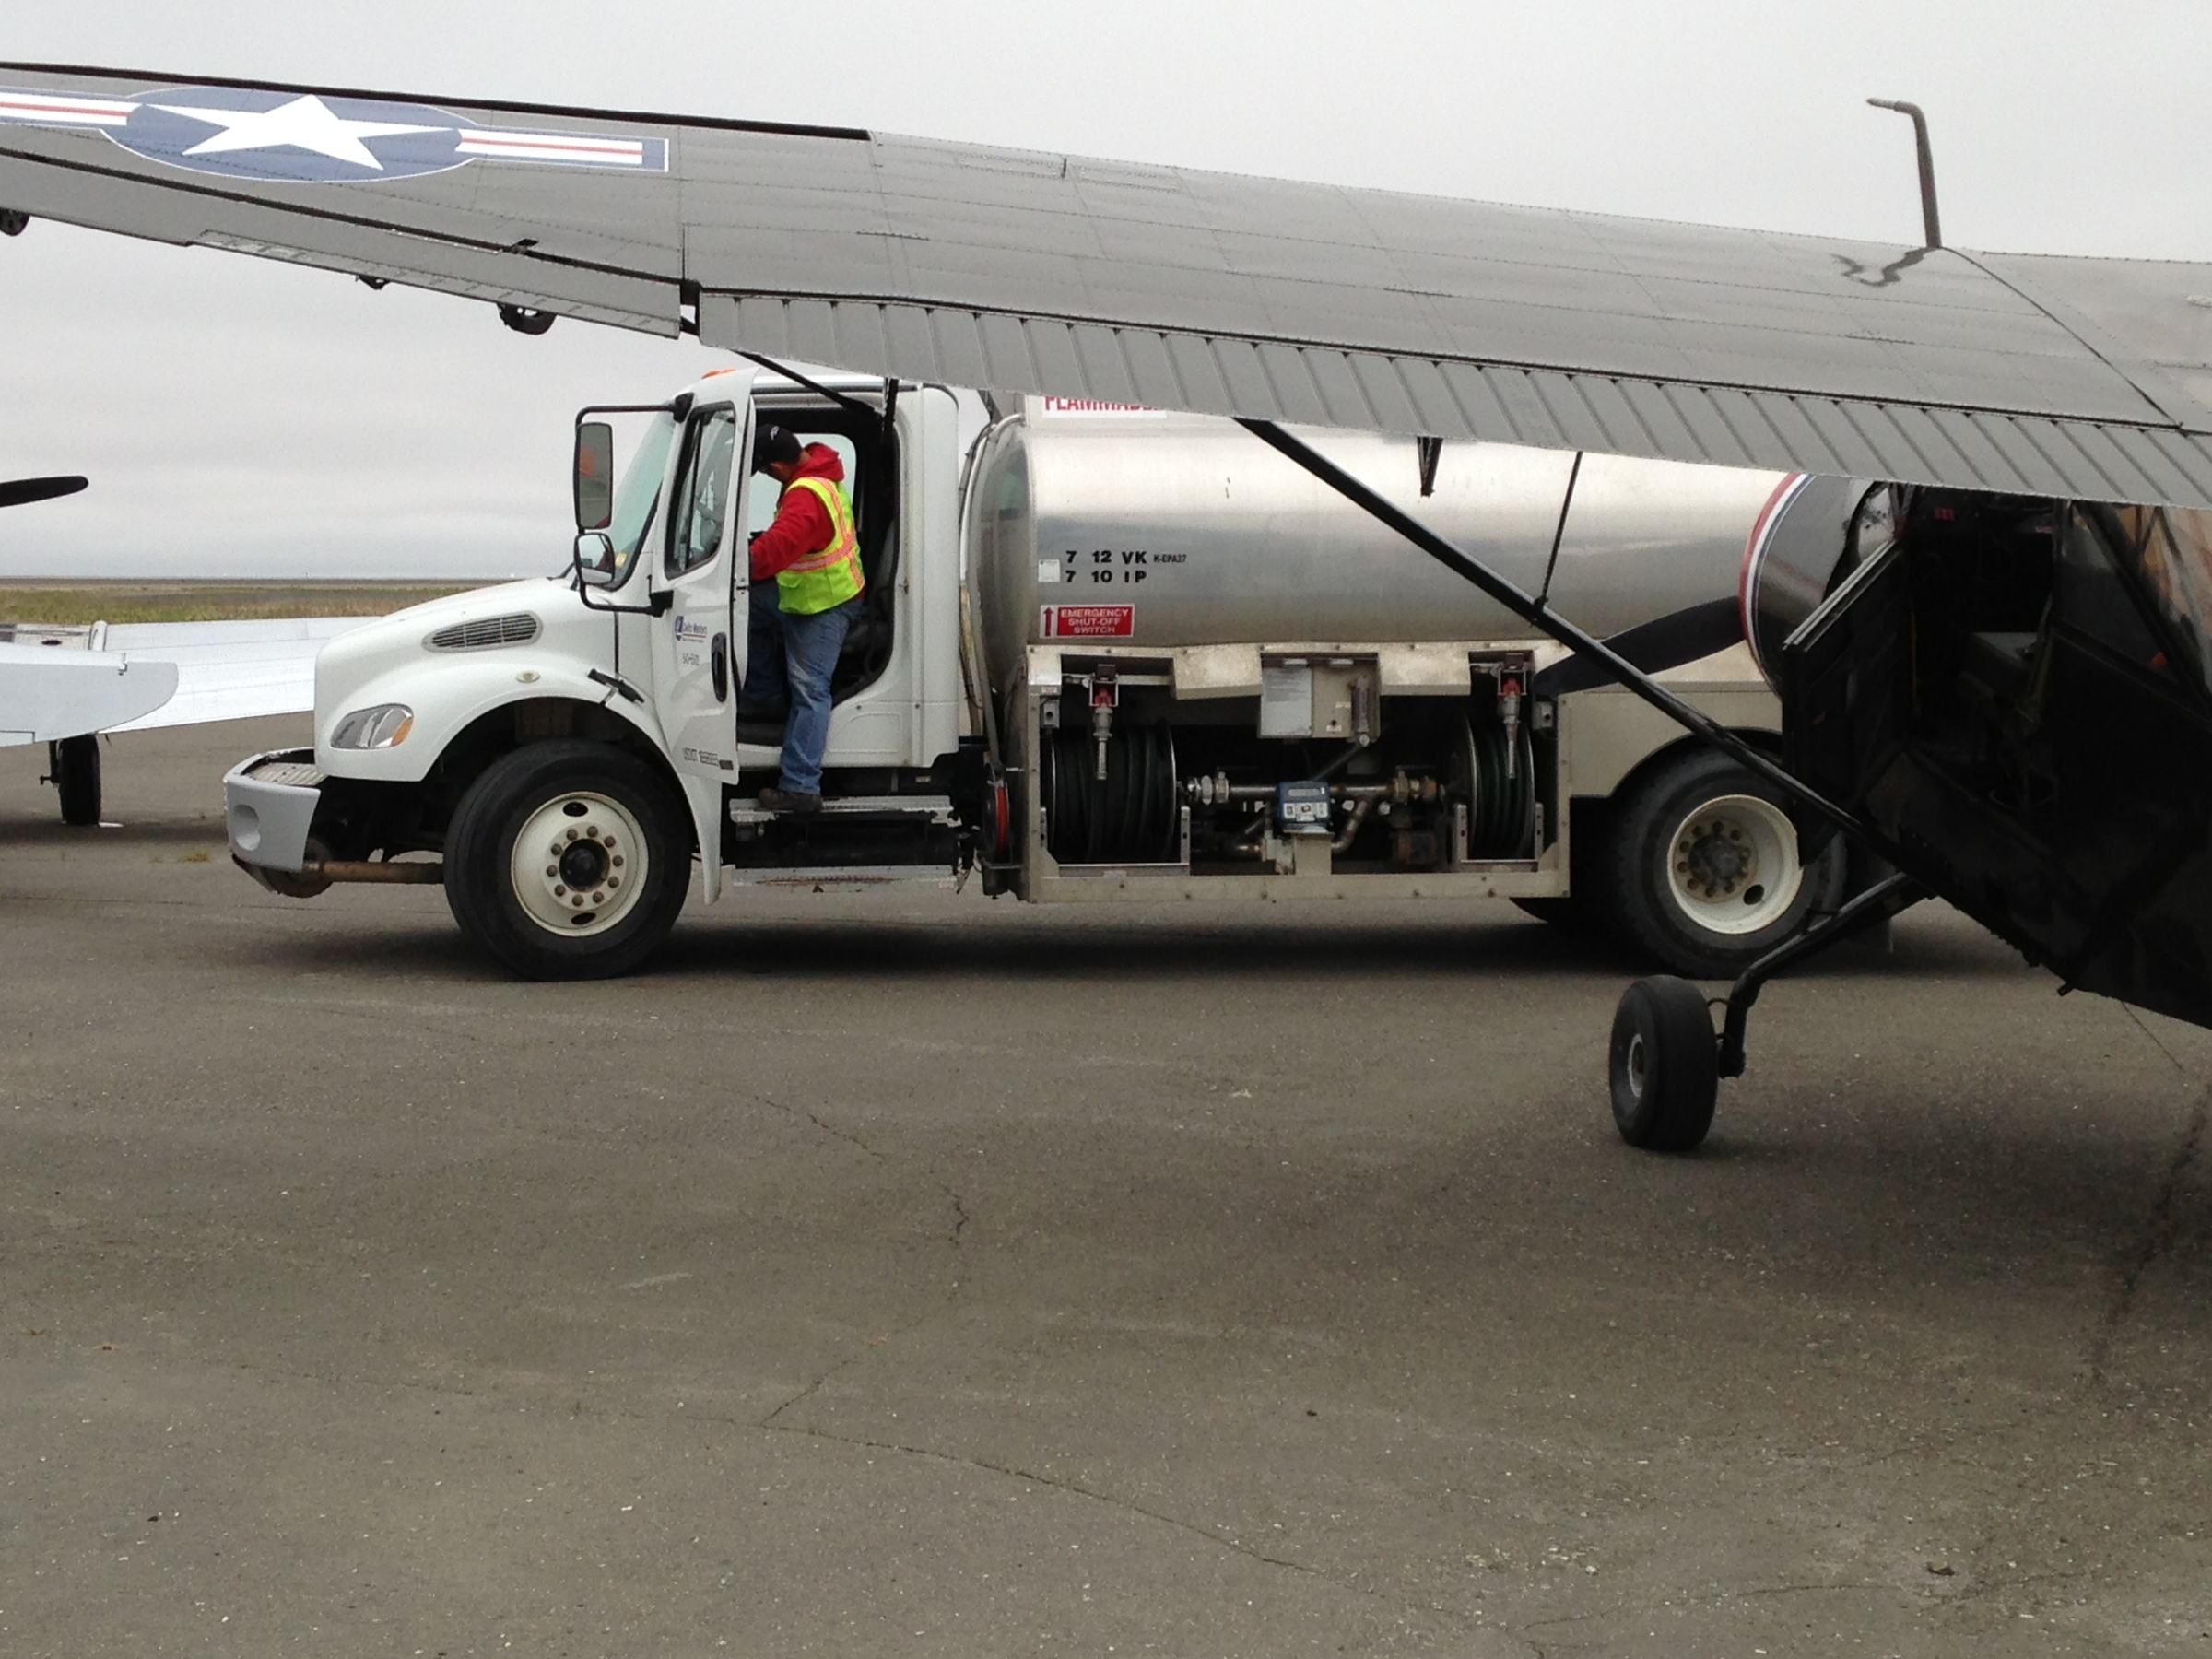 Delta Westerns donation of fuel